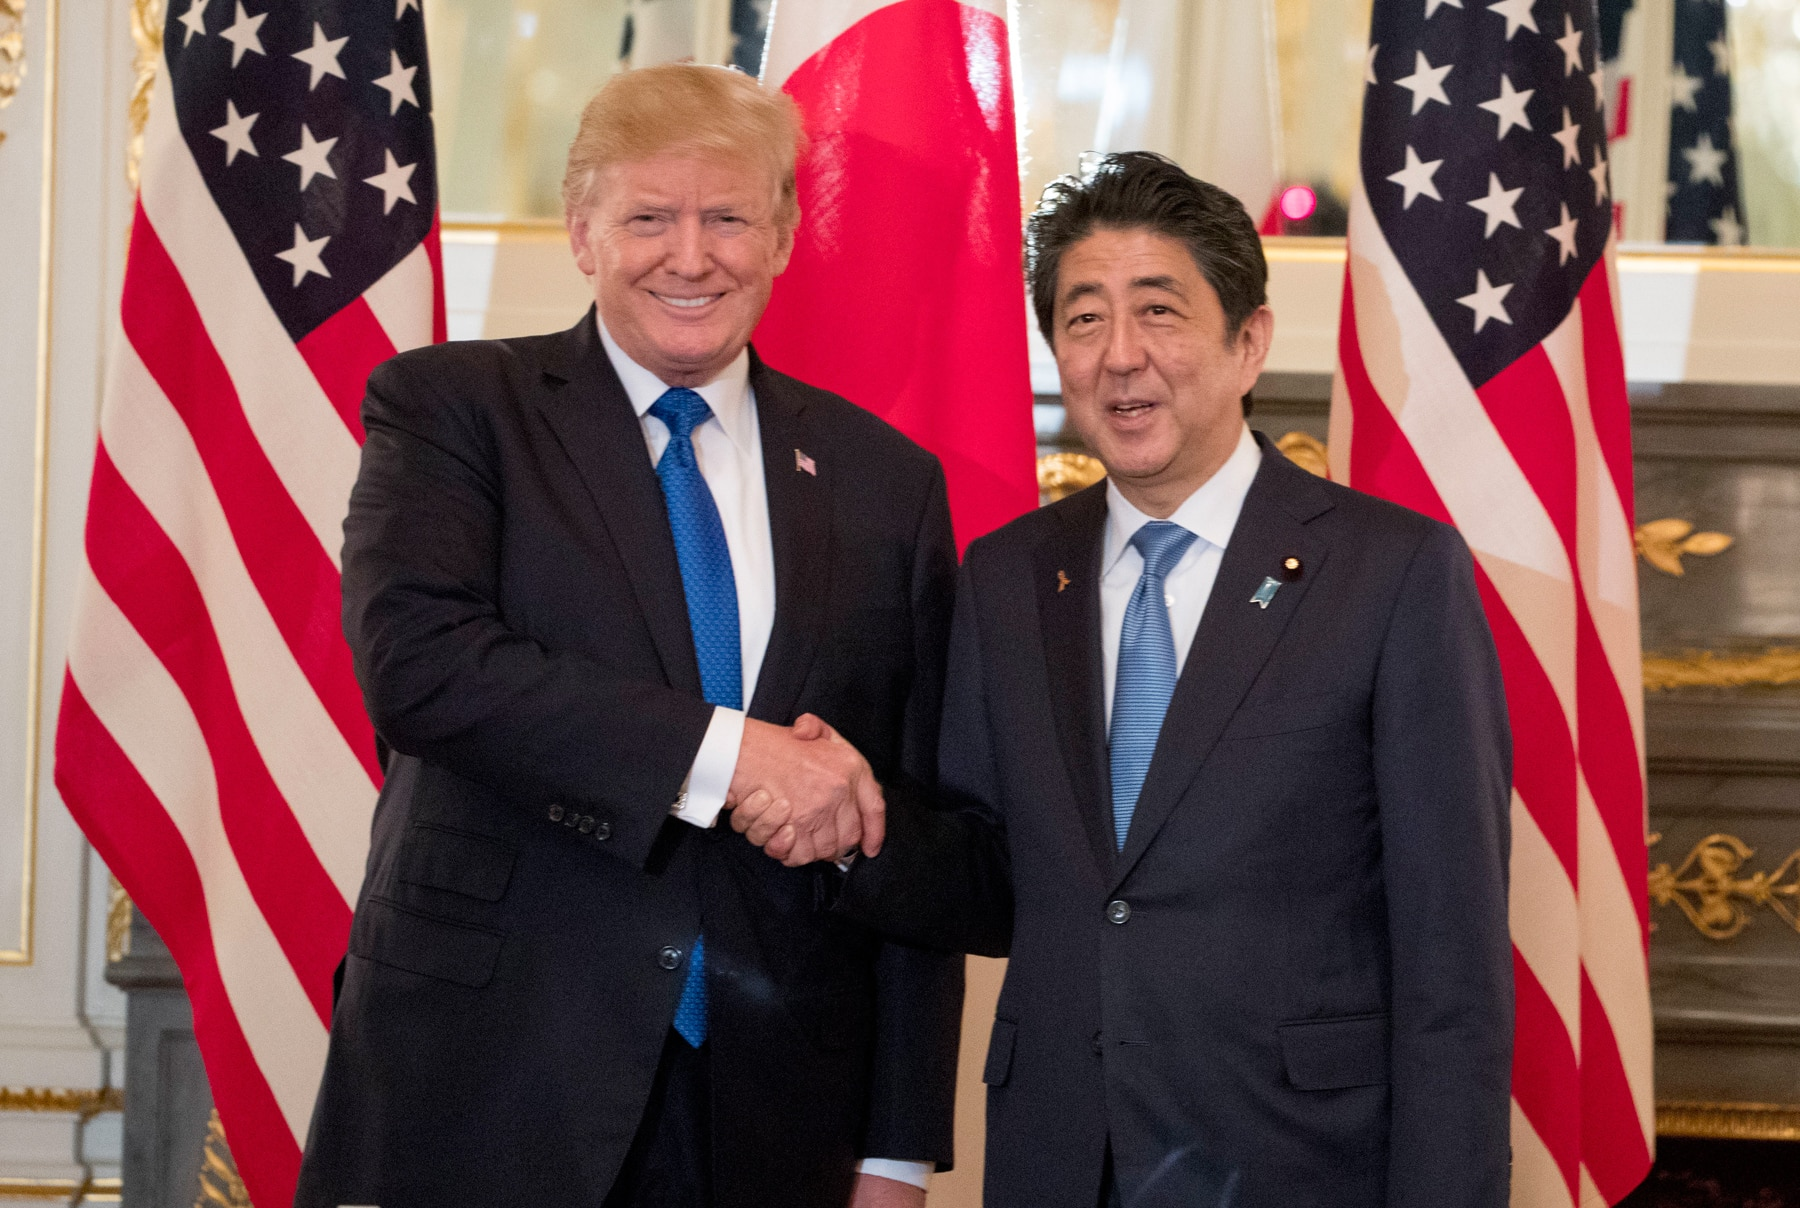 President Trump and Japanese Prime Minister Shinzō Abe shaking hands (© AP Images)